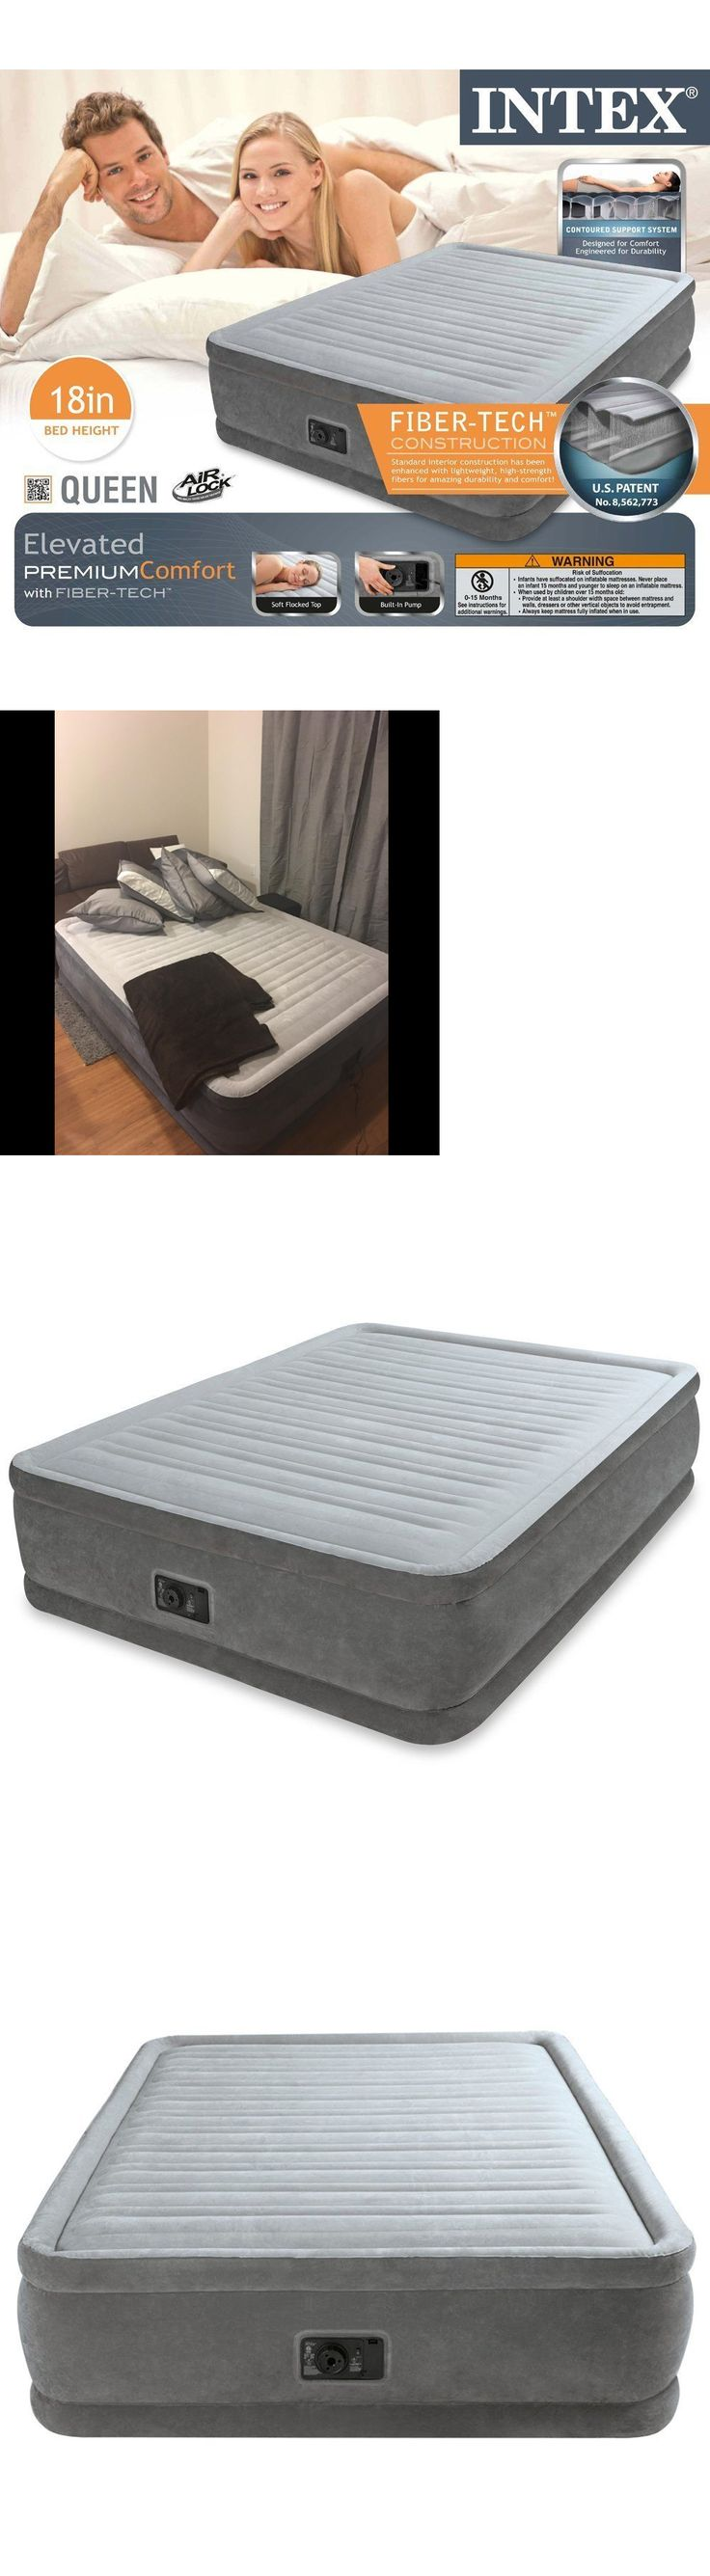 Inflatable Mattresses Airbeds 131598: Queen Size Air Bed Mattress Intex 18  Built-In Electric